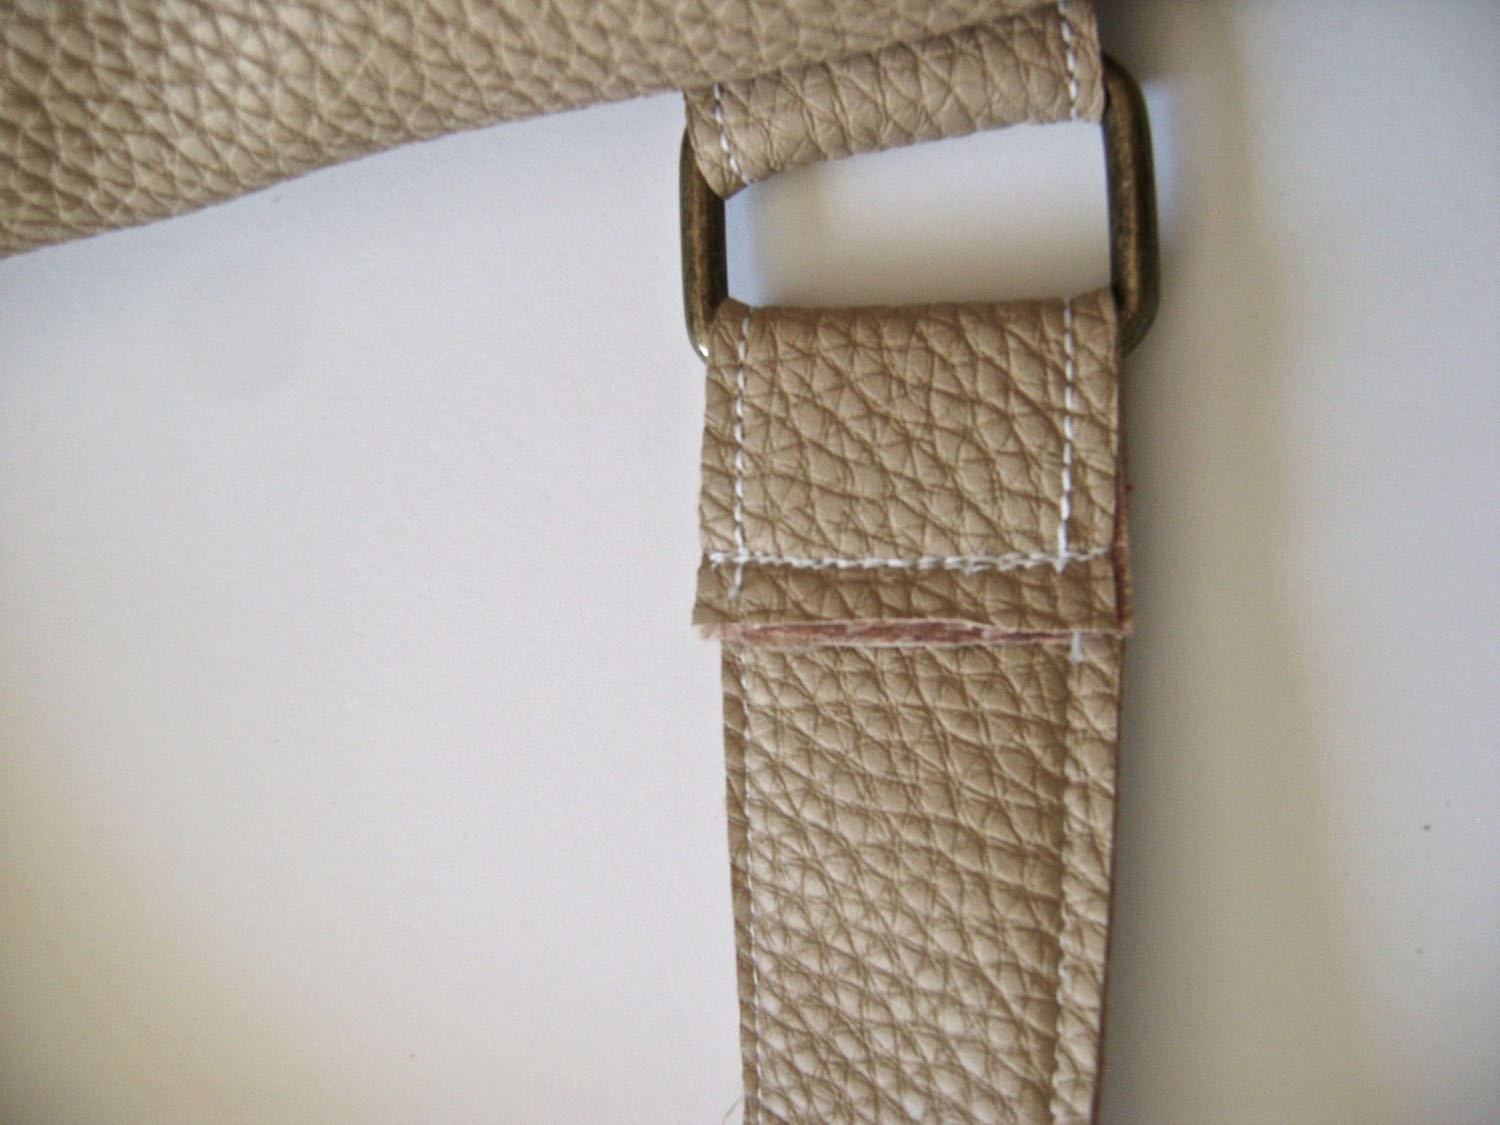 """step 25 -Pull the strap through the metal hardware and fold it at 1.50"""". Sew across the strap end two or three times to secure it. Slide the strap covers down to hide the strap stitching."""